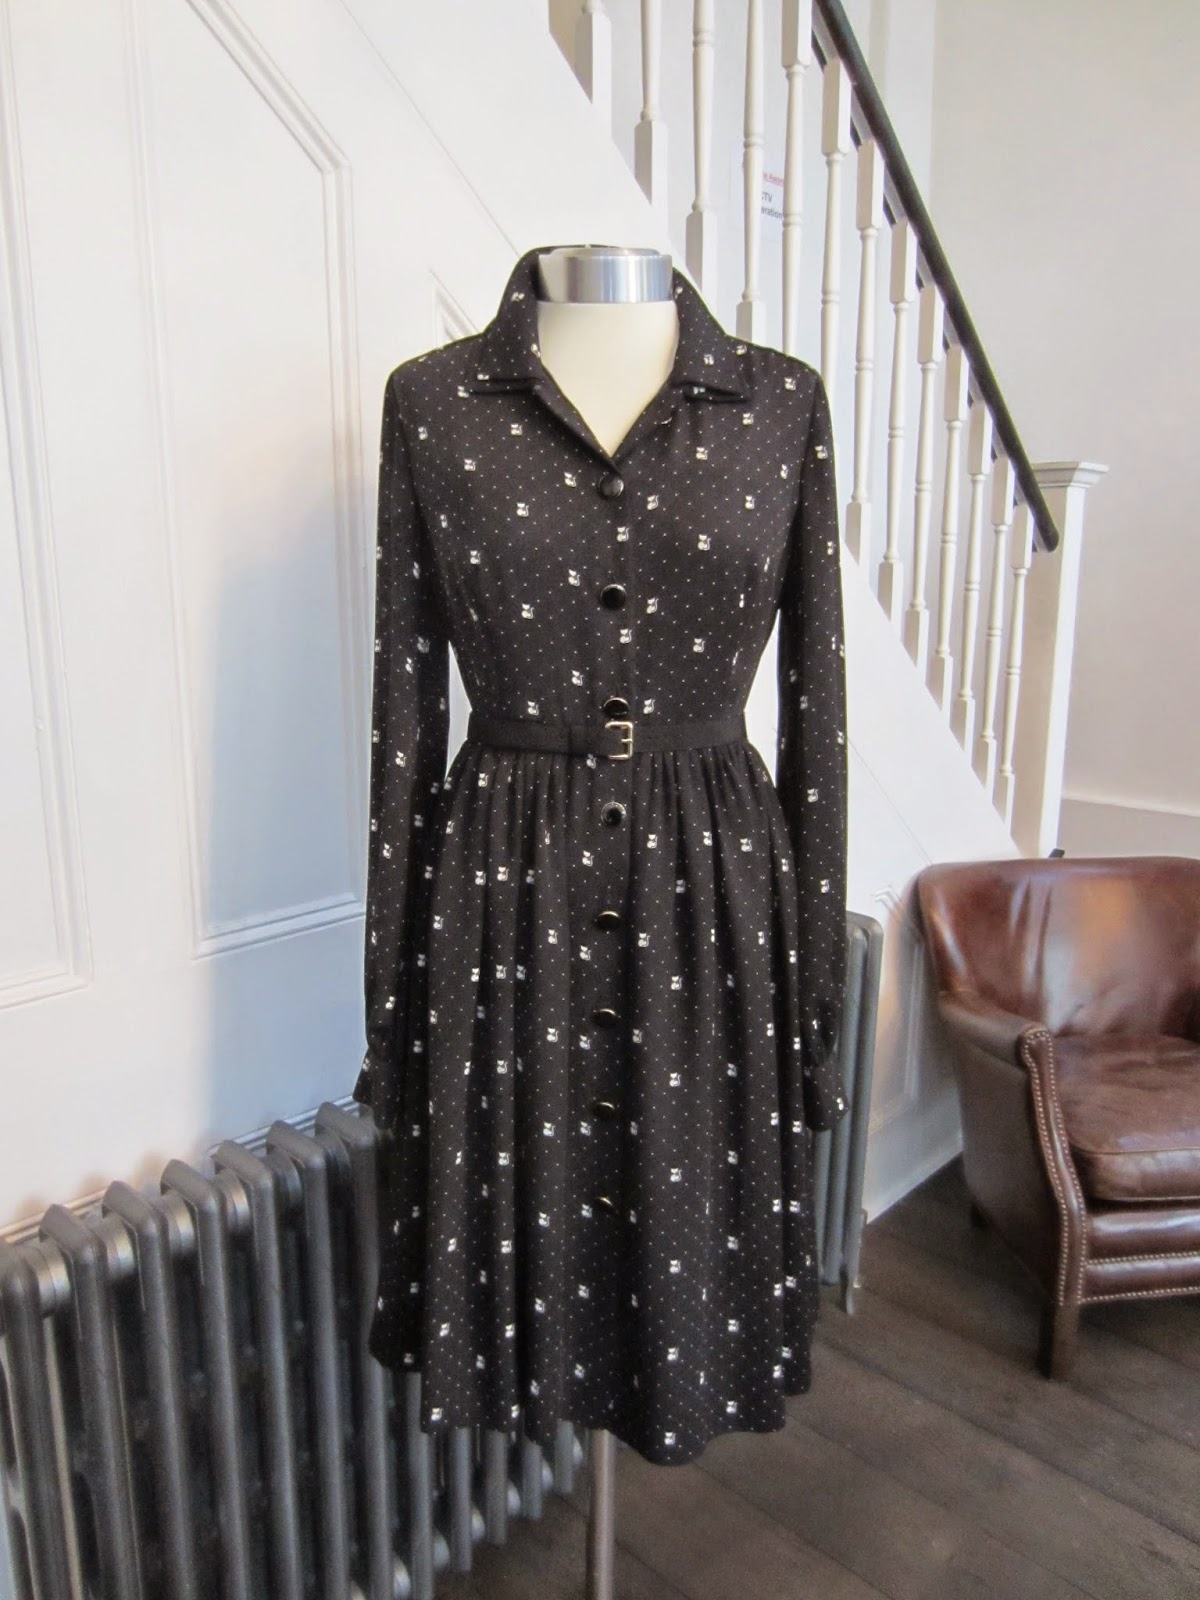 Orla Kiely Black Dress with Cream Cat Print